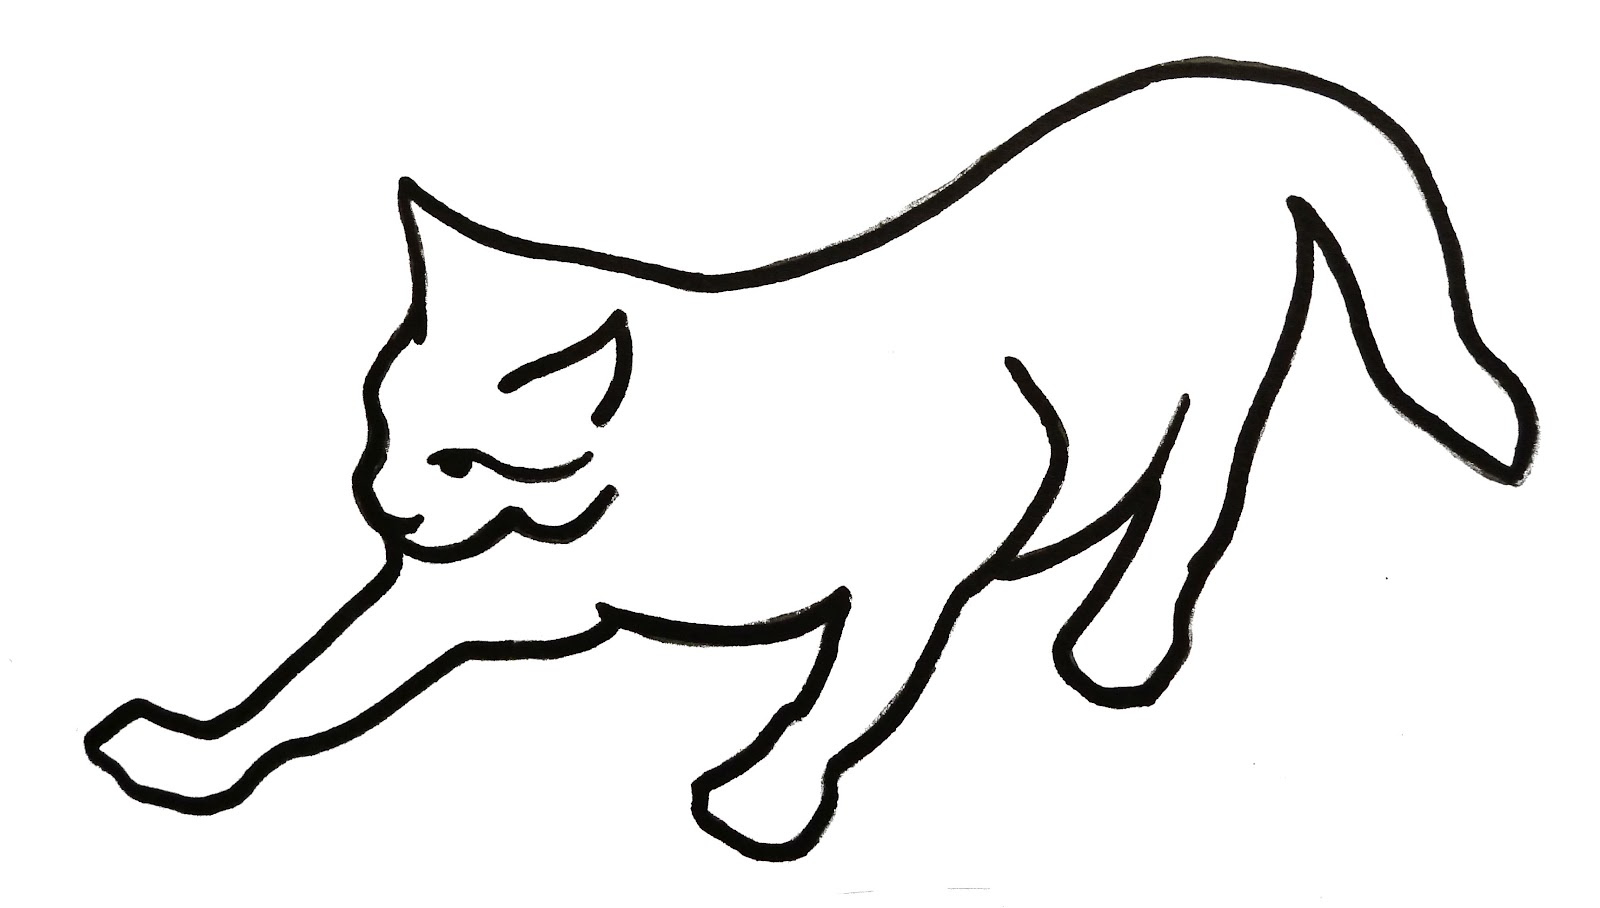 Line Drawing From Photo : Cat drawing clipart best